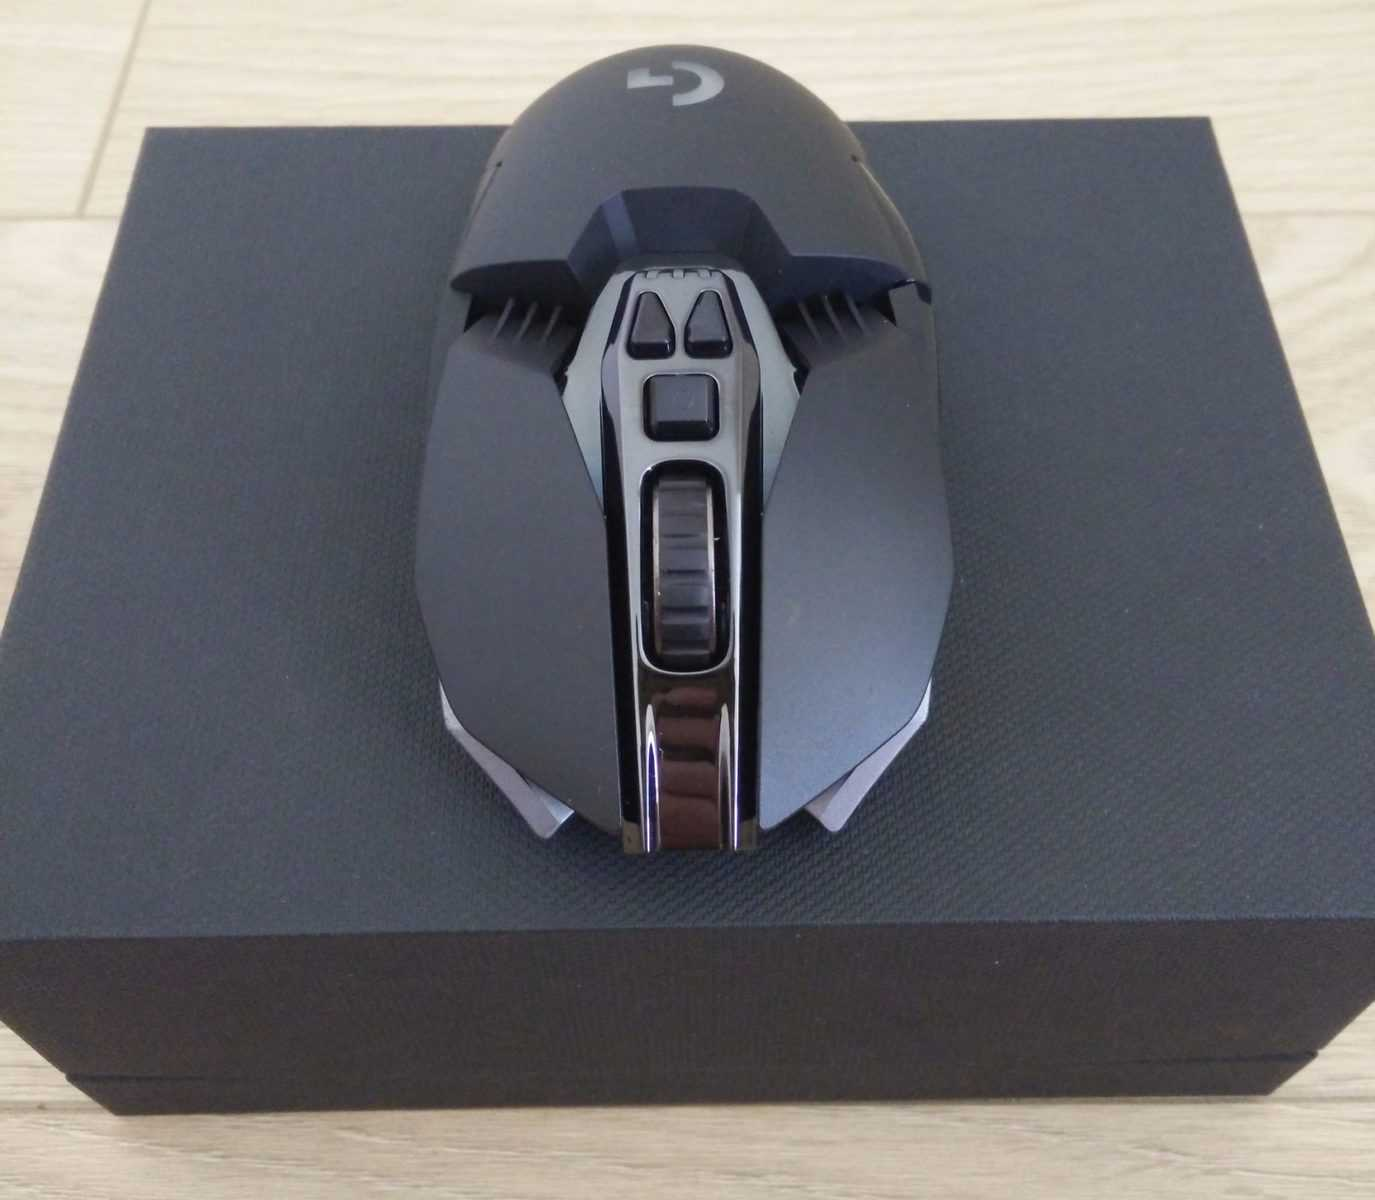 Logitech-G900-Photo-13 Logitech G900 Chaos Spectrum Gaming Mouse Review